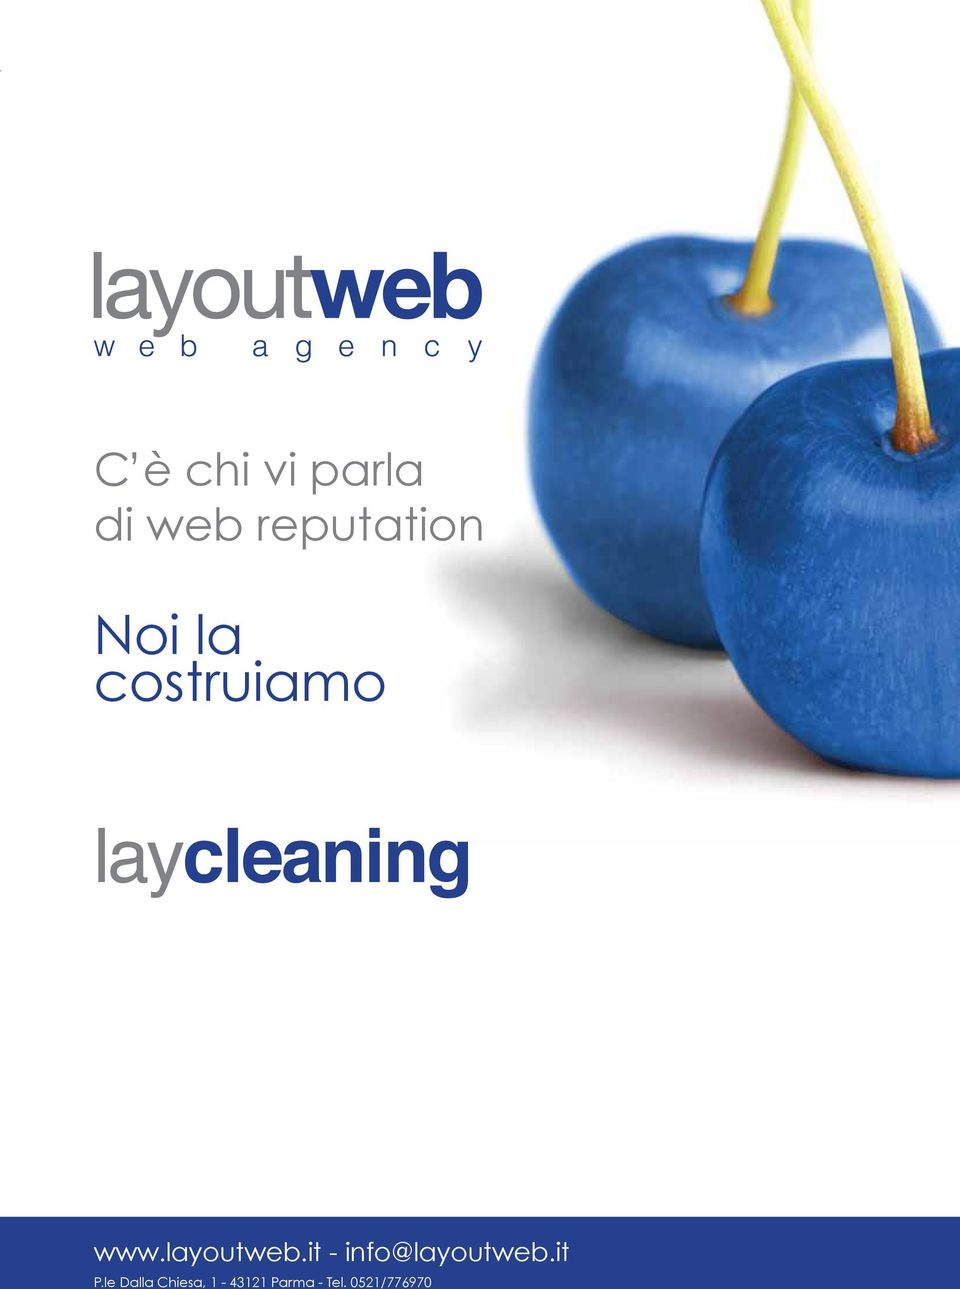 layoutweb.it - info@layoutweb.it P.